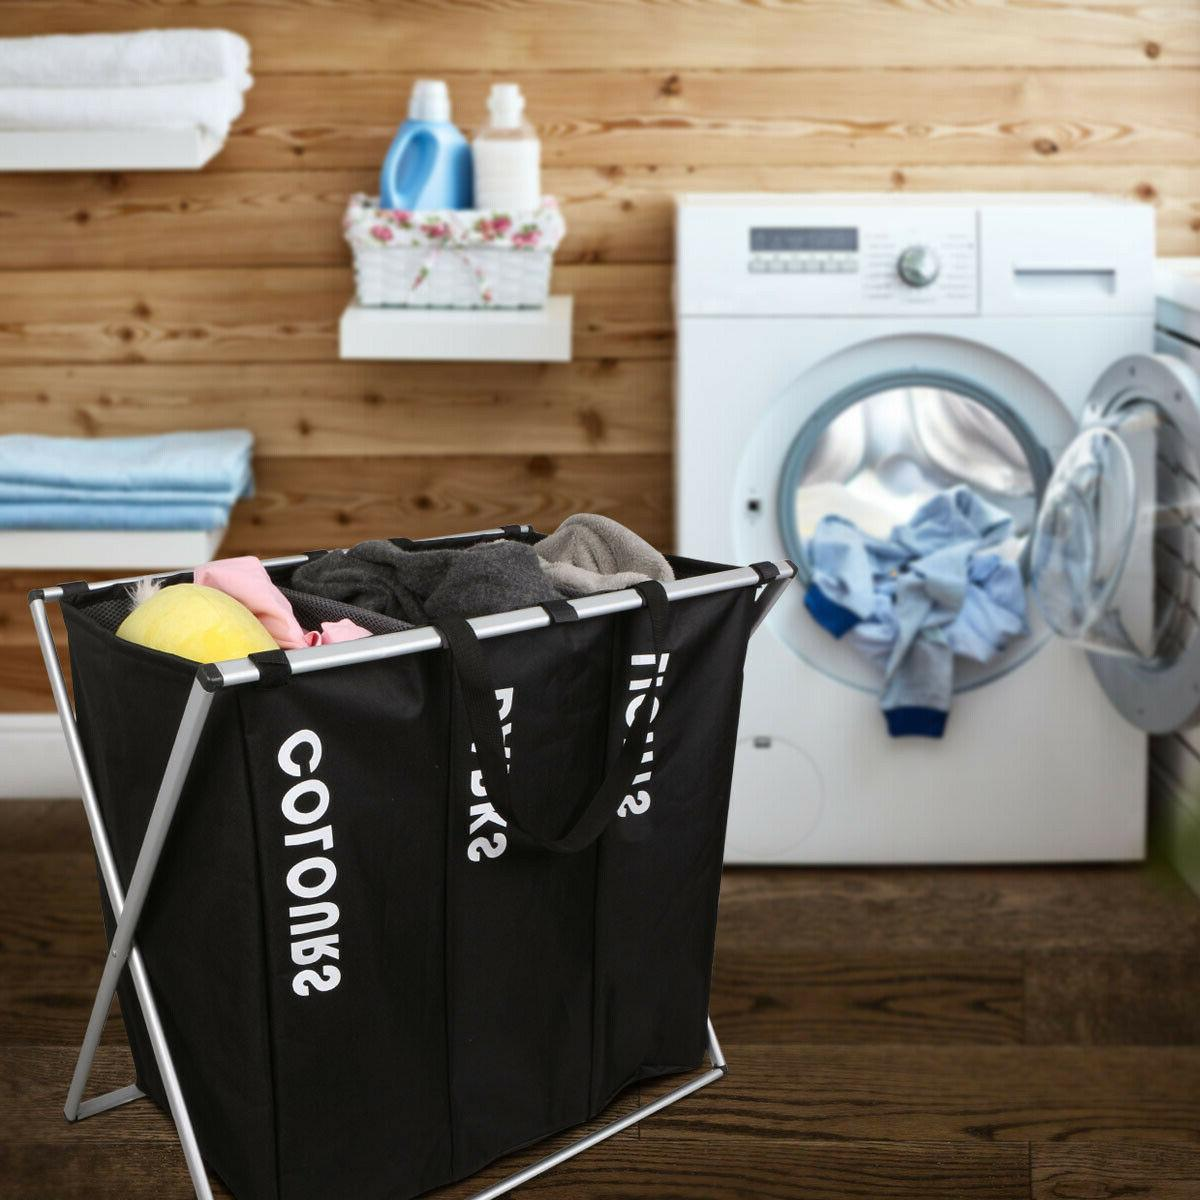 3 Sections Hamper for Laundry Clothes Dirty Bin